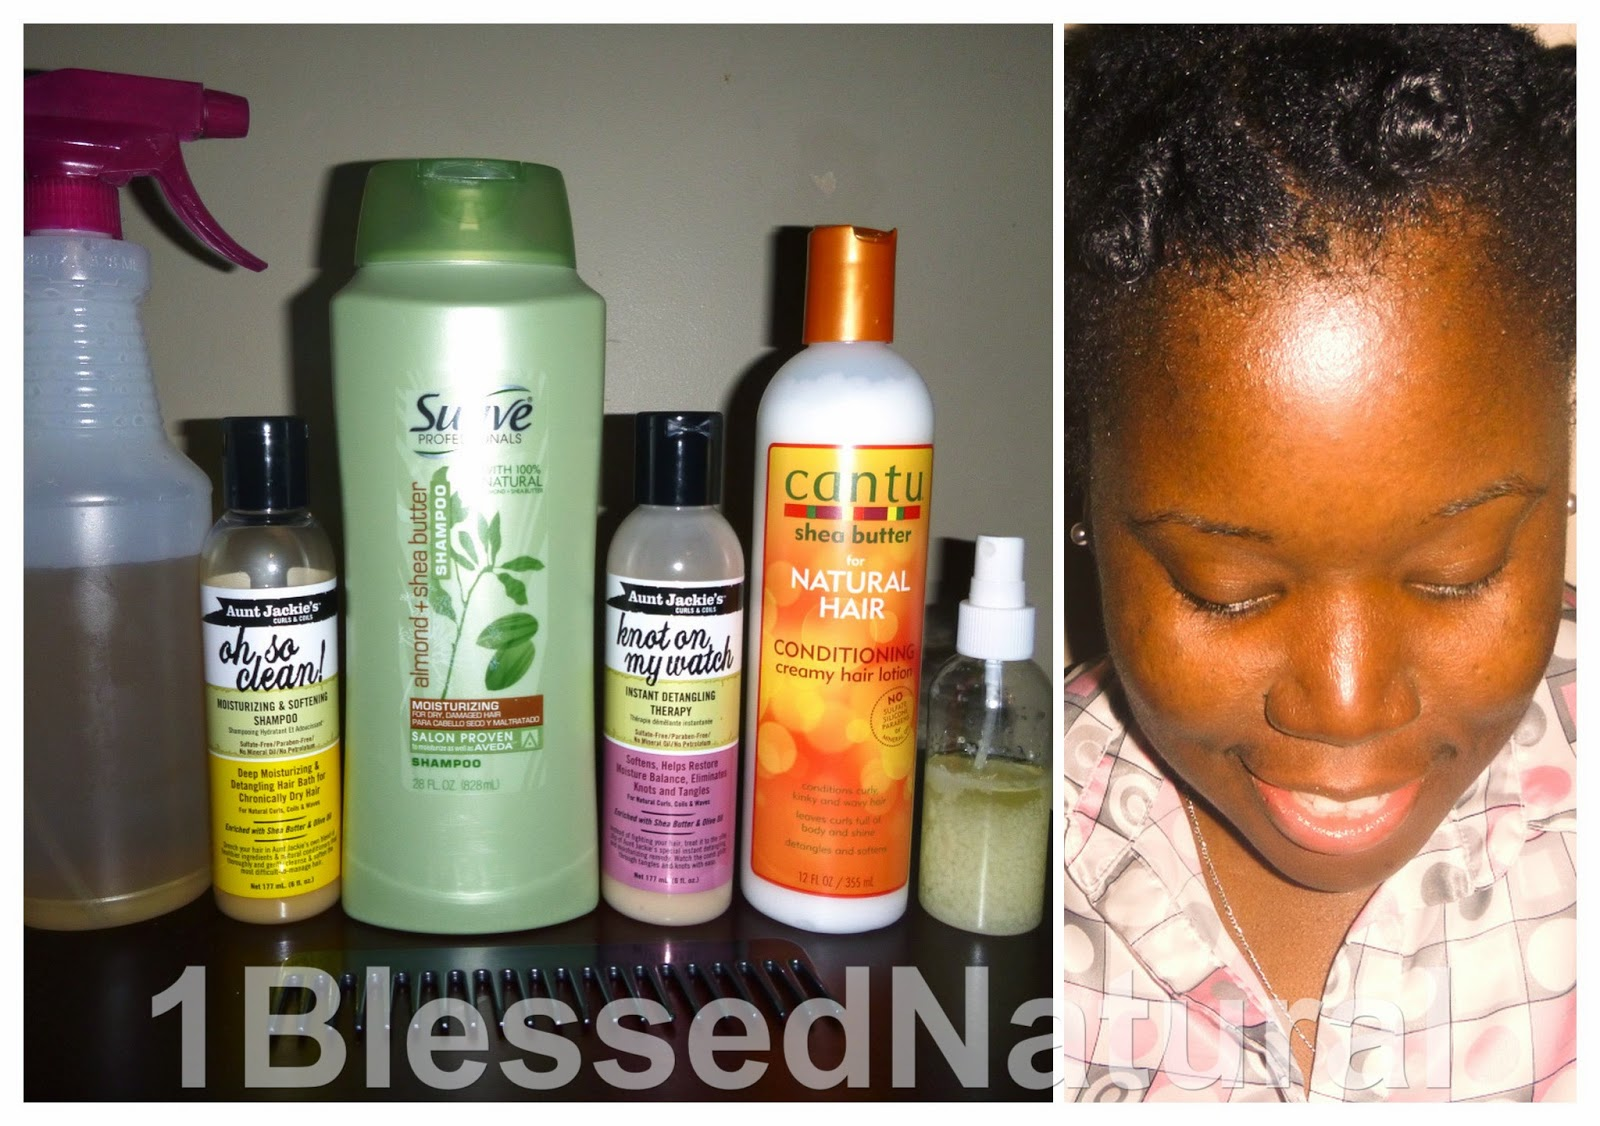 My New Winter Natural Hair Regimen